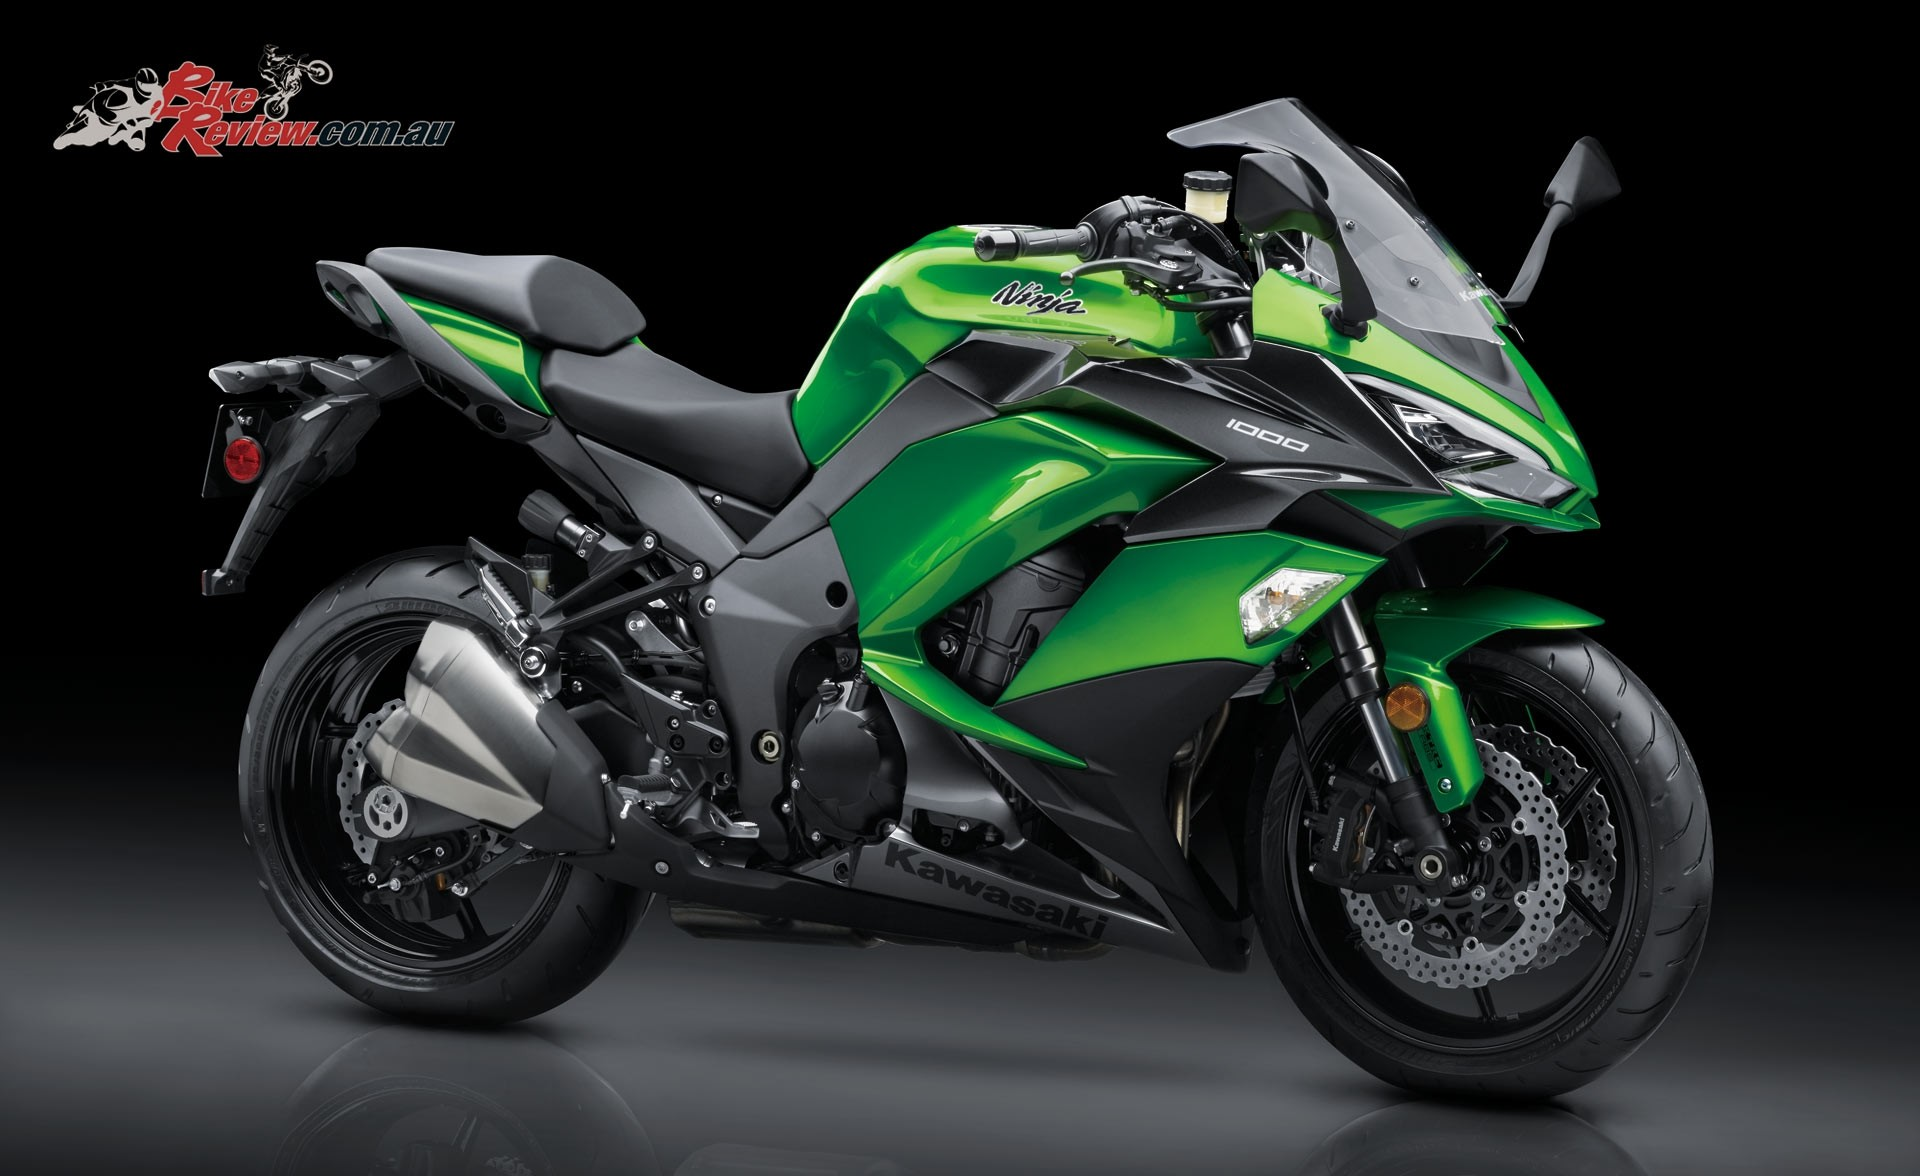 2000x1123 Kawasaki Ninja H2r Wallpaper Iphone 389228